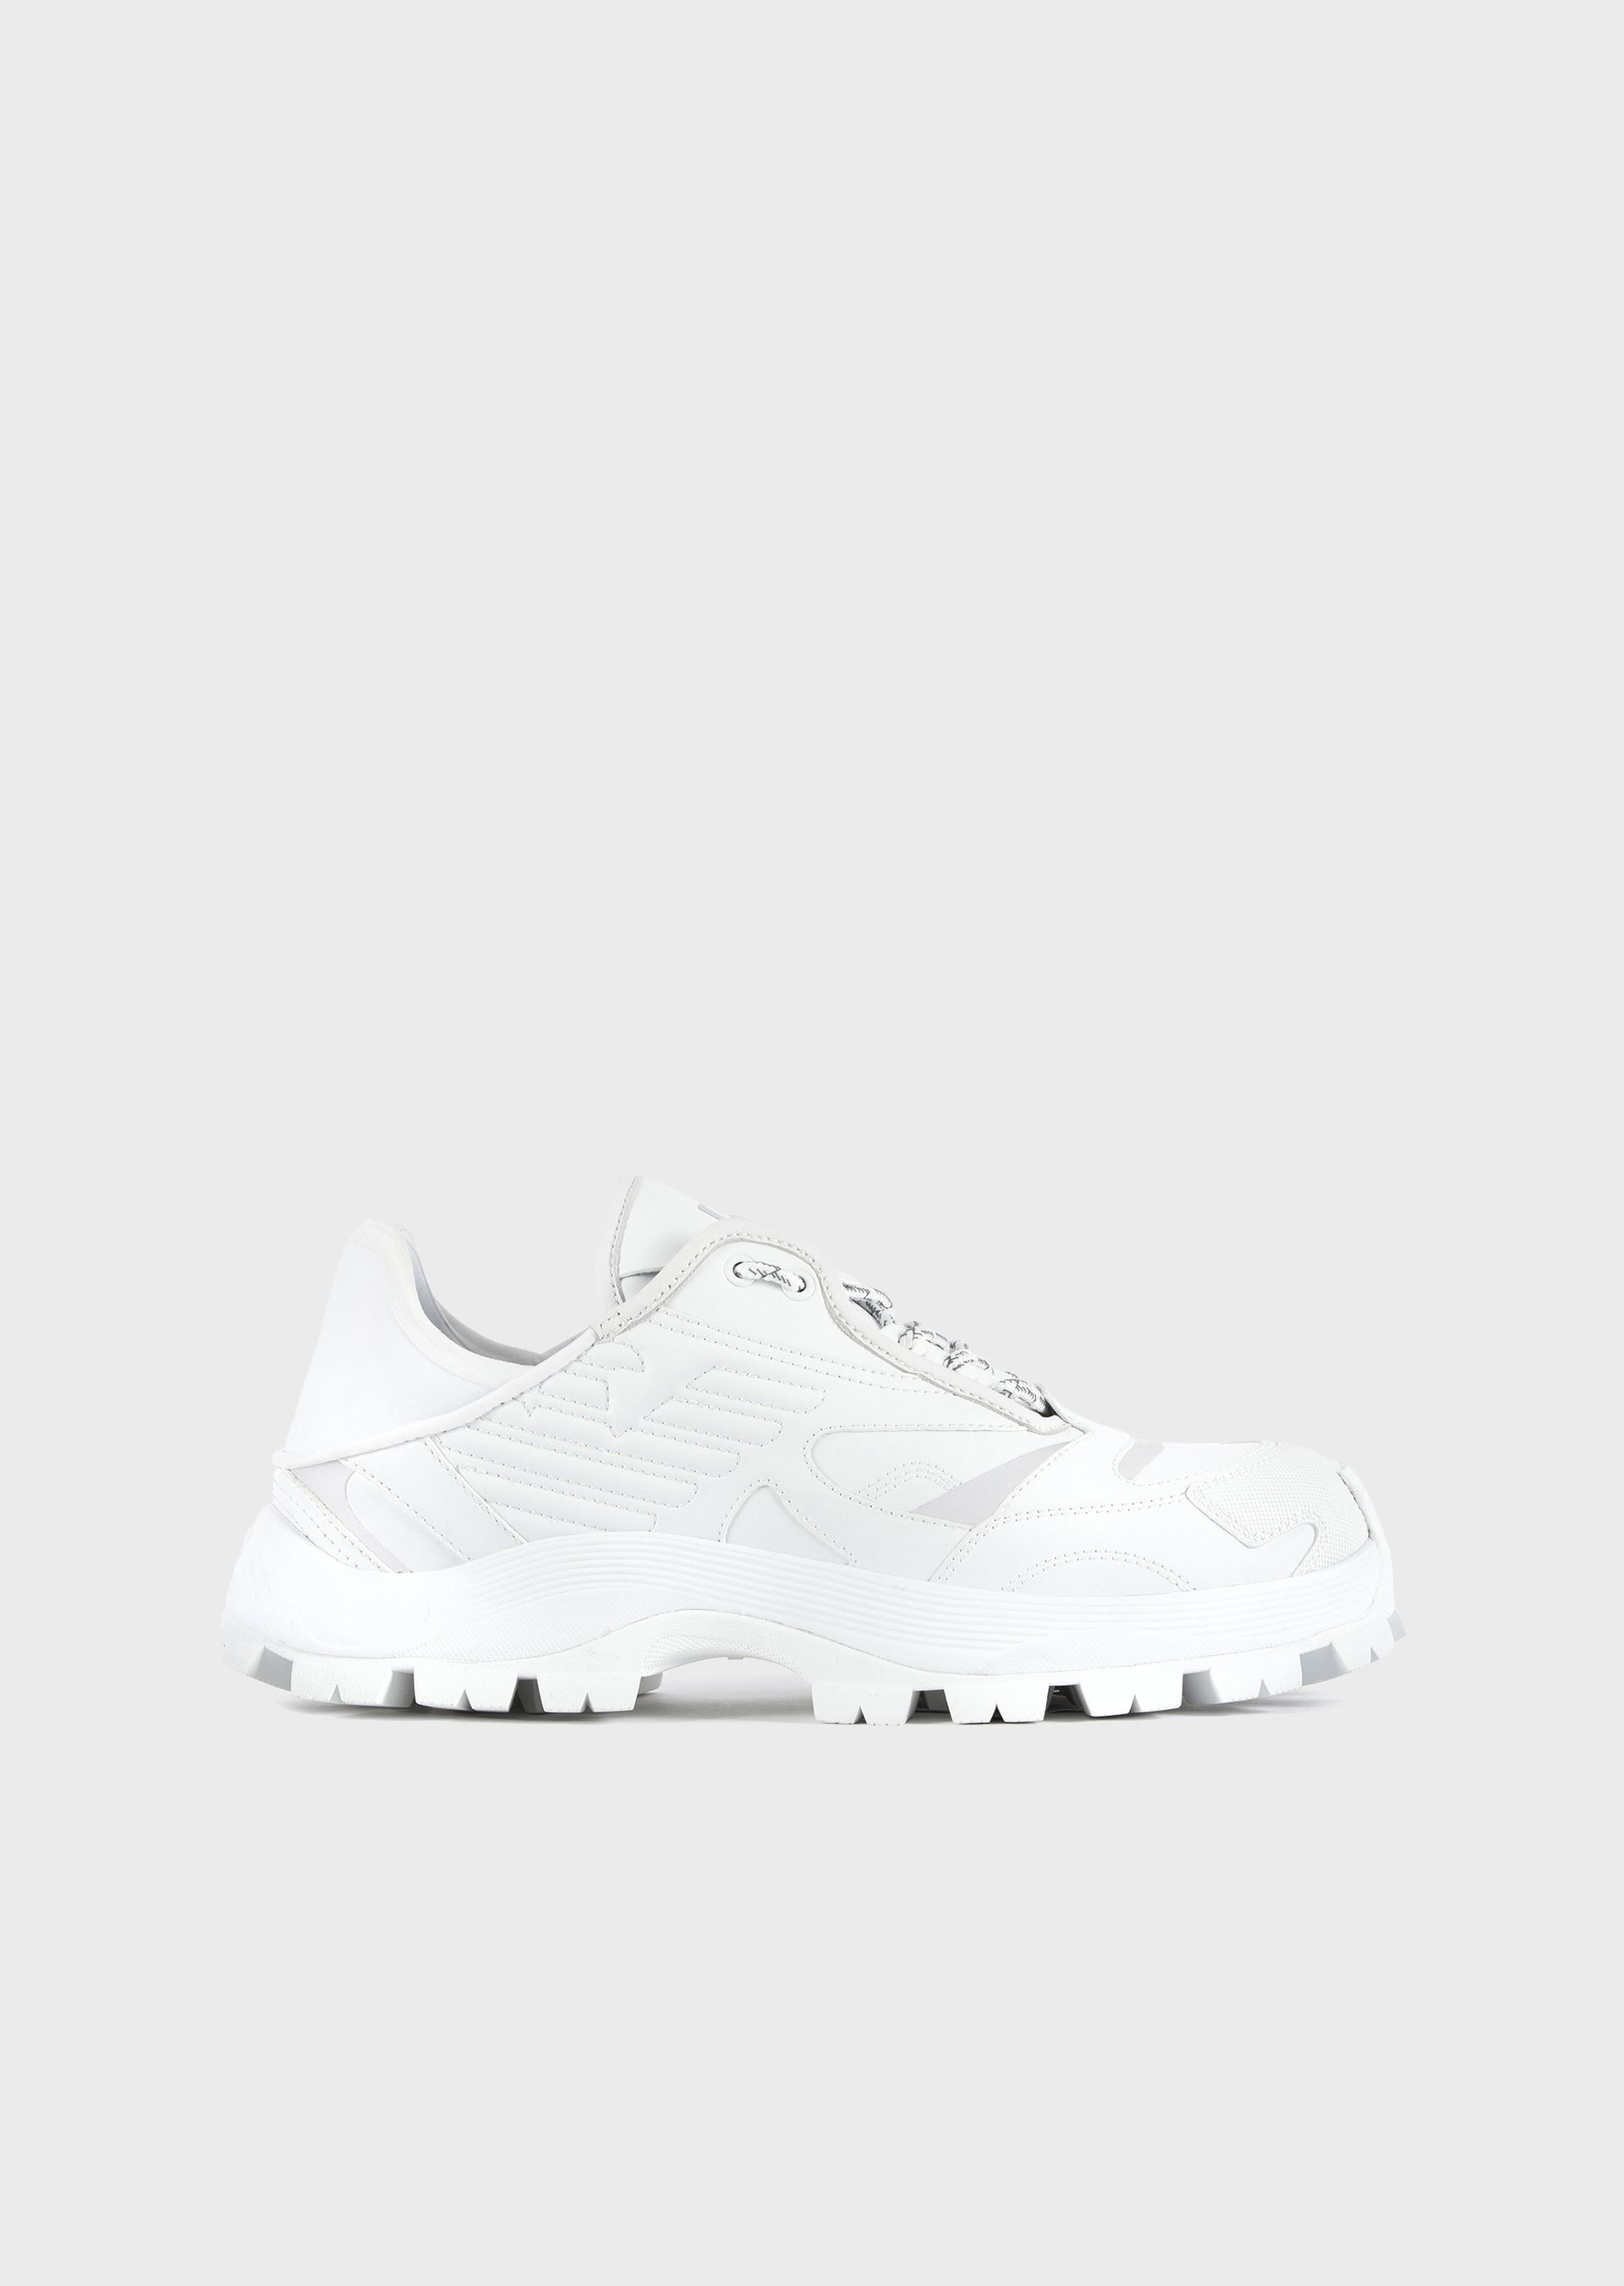 EMPORIO ARMANI Chunky leather sneakers with reflective accents and scuba fabric details